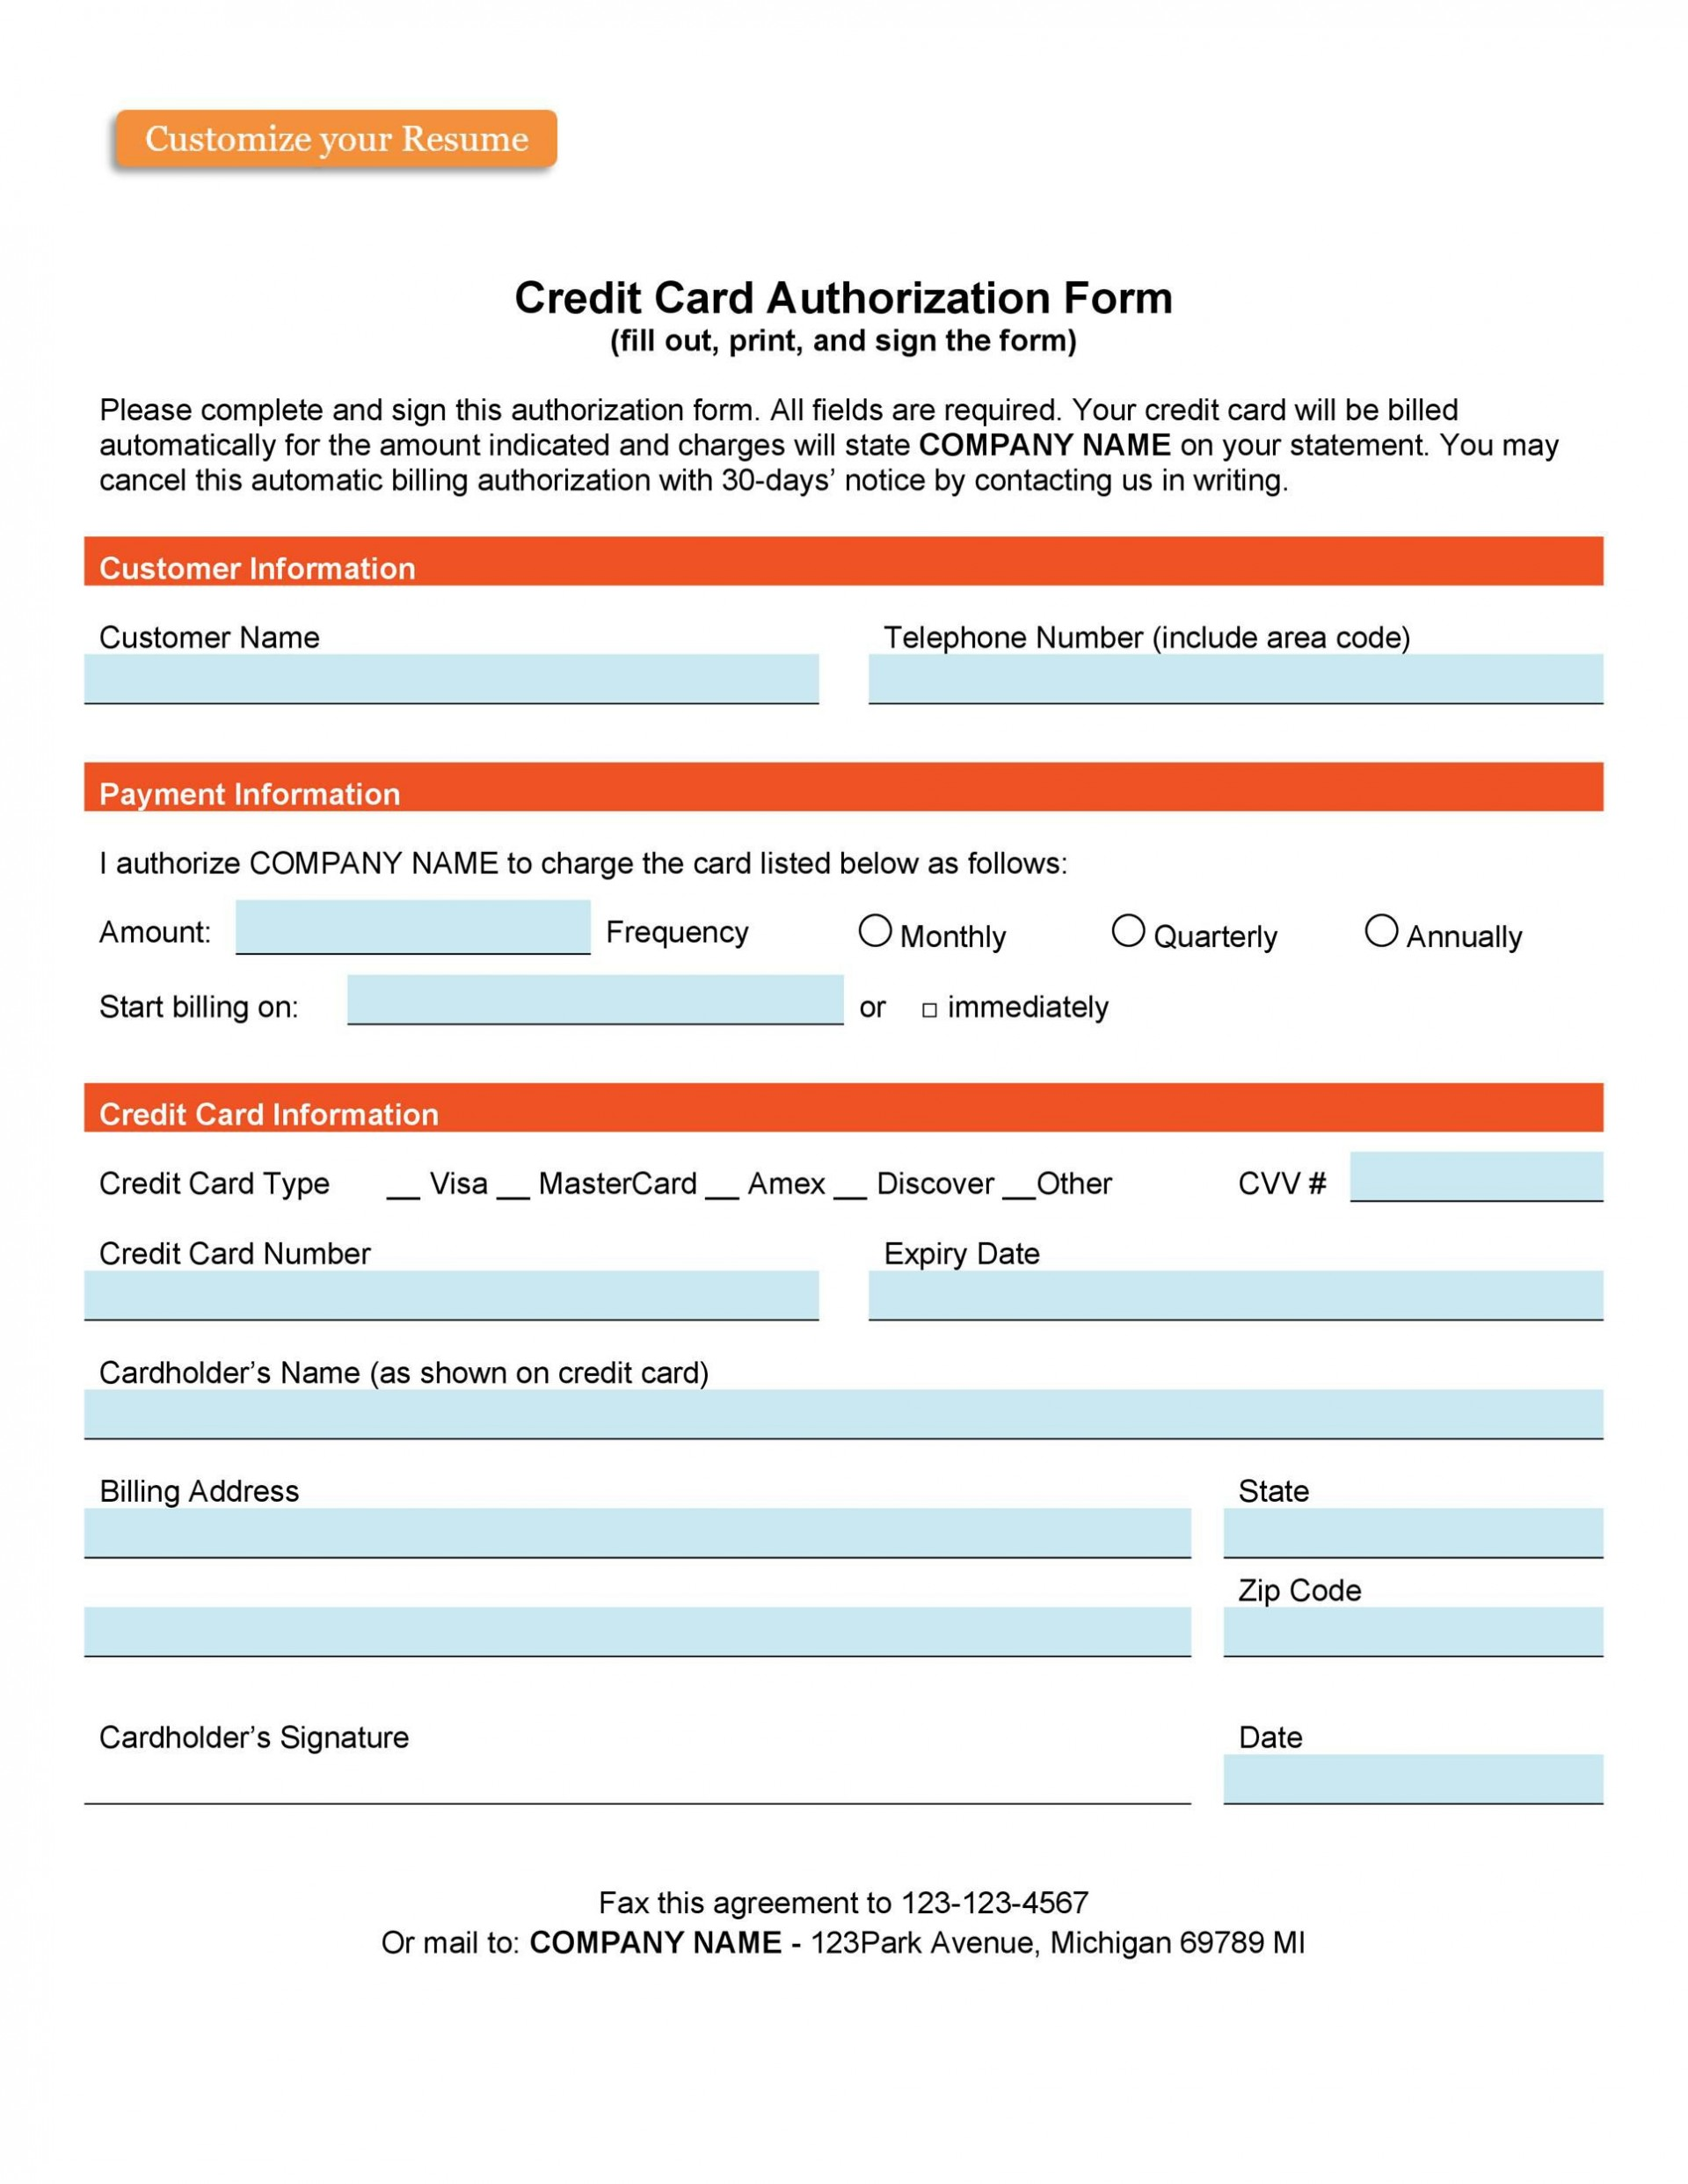 008 Incredible Credit Card Form Template Excel High Resolution  Authorization Payment1920